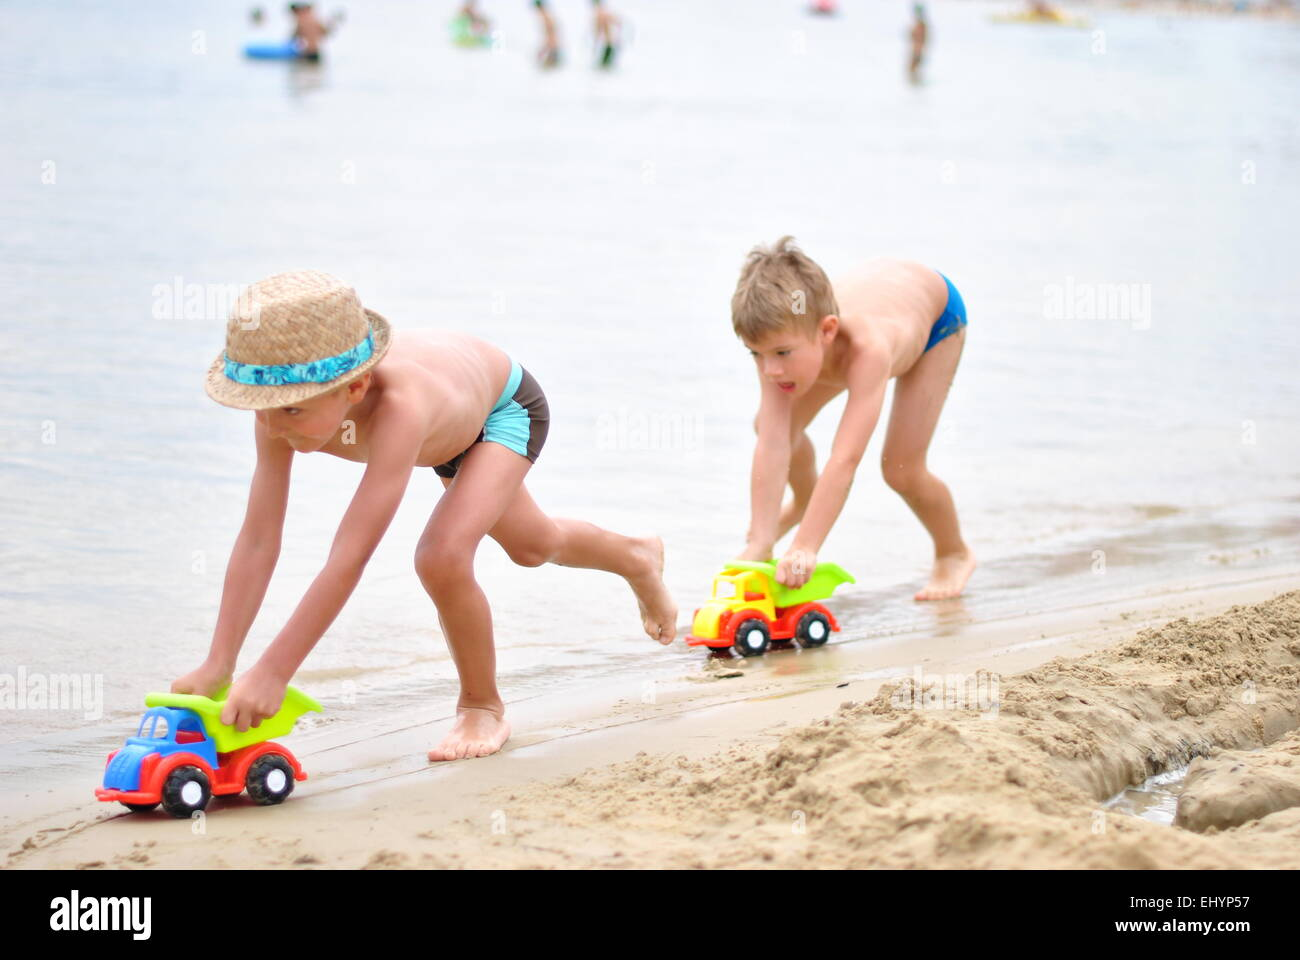 Boys playing with plastic cars on the beach - Stock Image